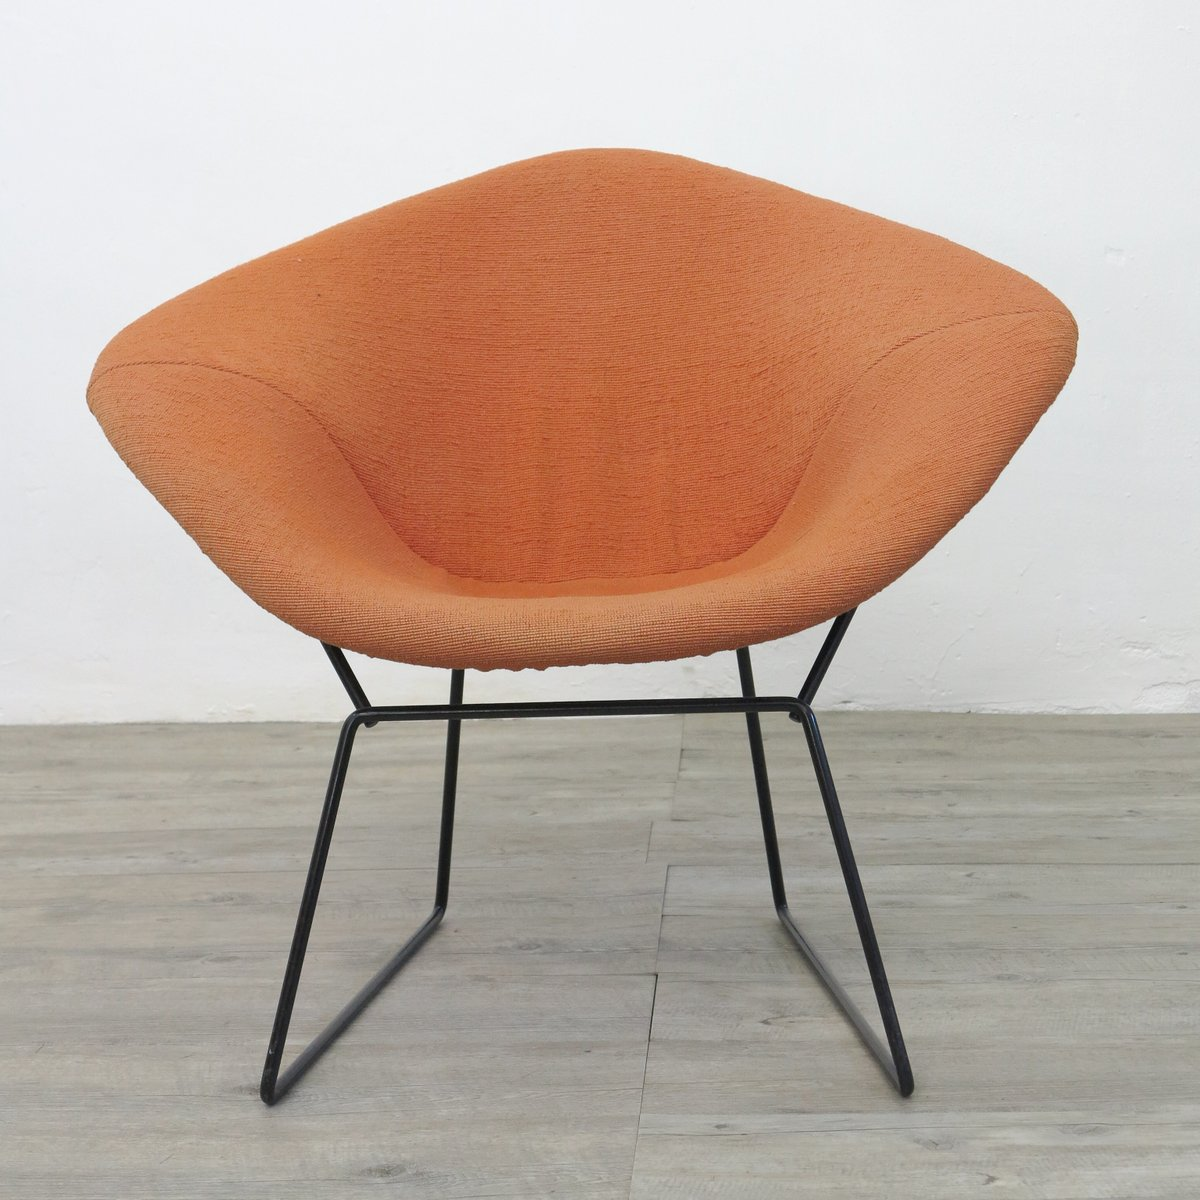 Bertoia diamond chair vintage - Vintage Diamond Chair By Harry Bertoia For Knoll 1970s